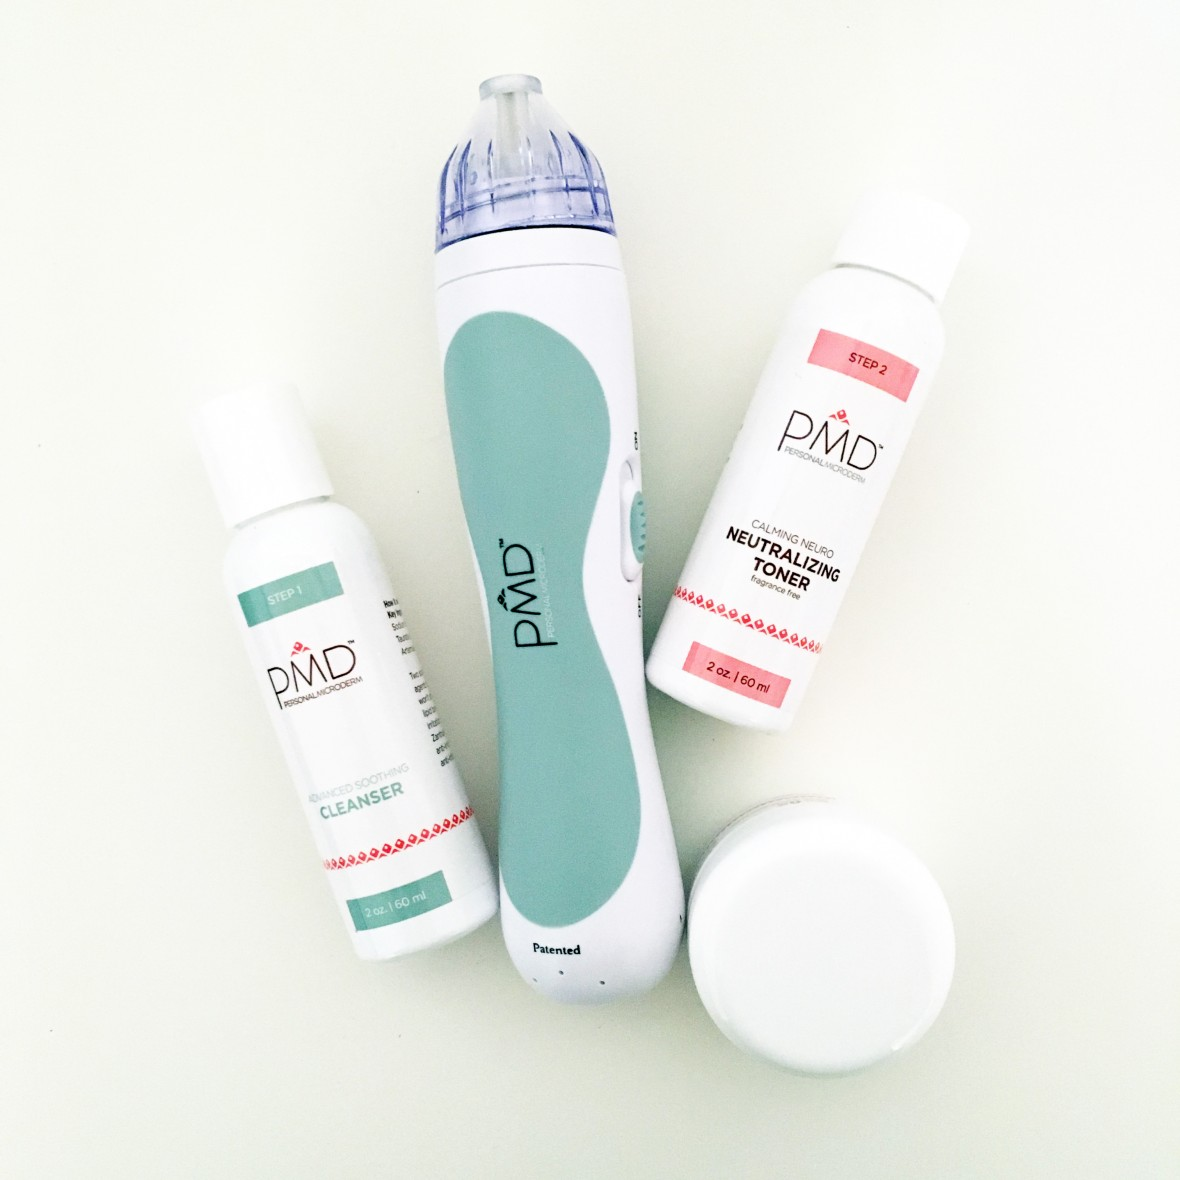 PMD skincare system